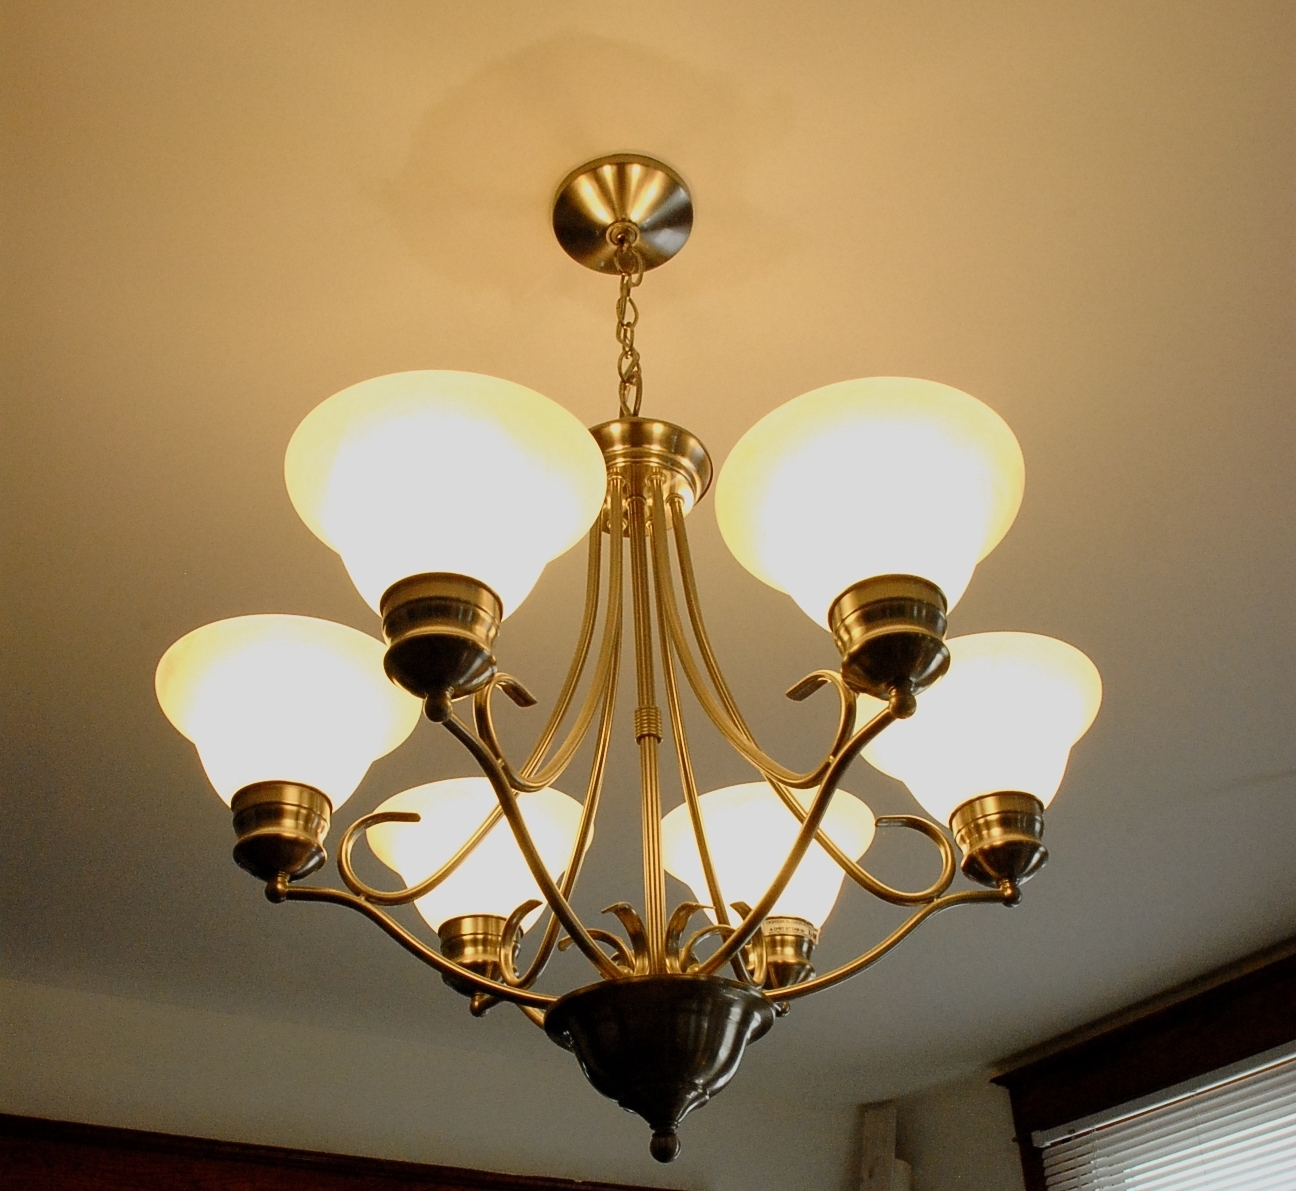 Chandeliers, Wall Sconces, And Light Fixtures (View 2 of 15)